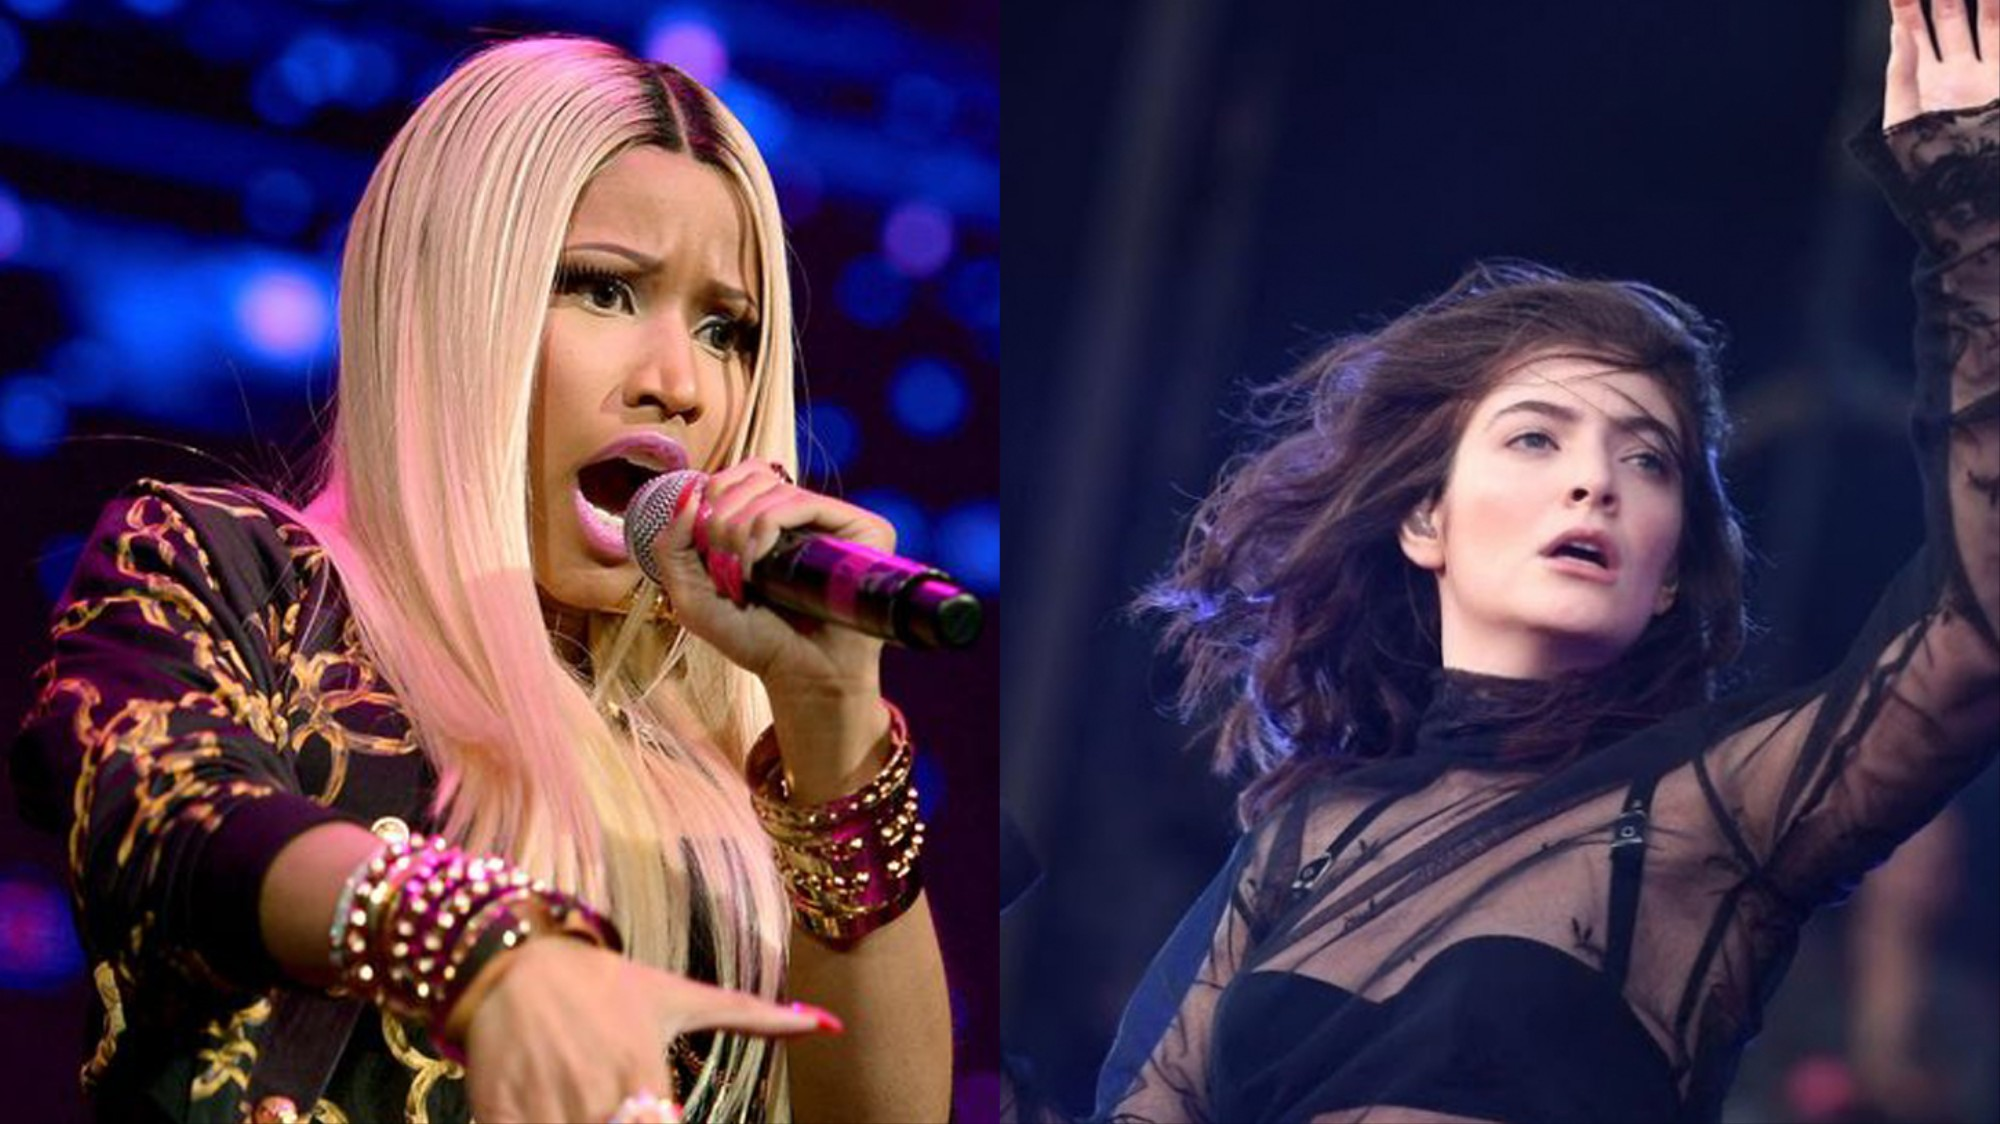 cancellations, freebies and flops: have pop concerts reached their